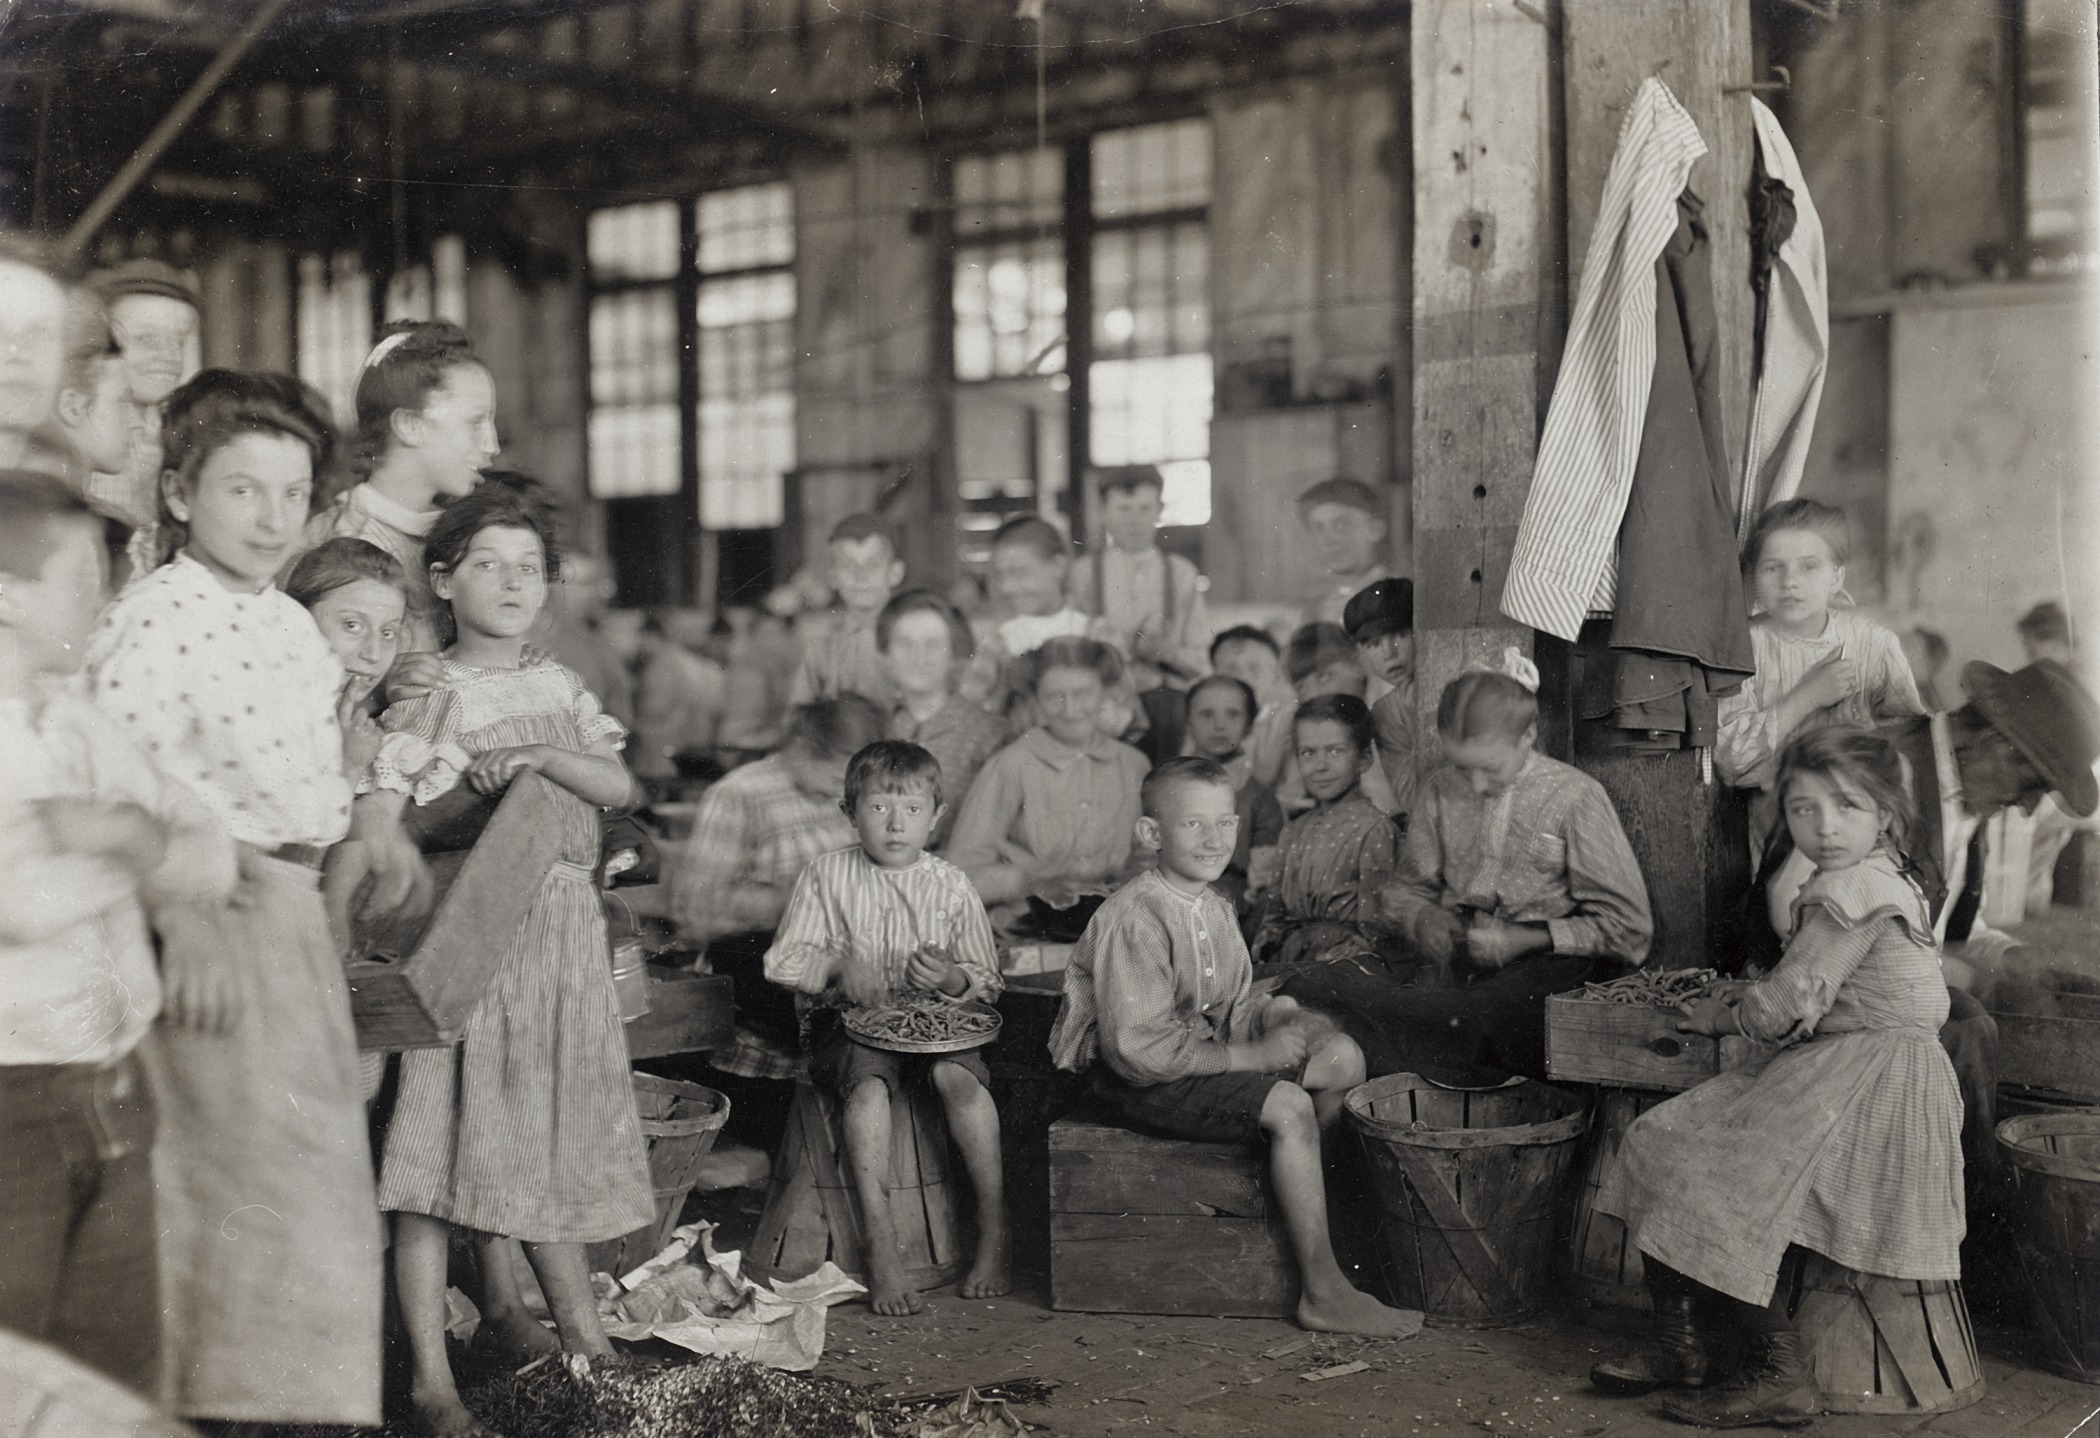 Young children in a factory pose for a group picture.